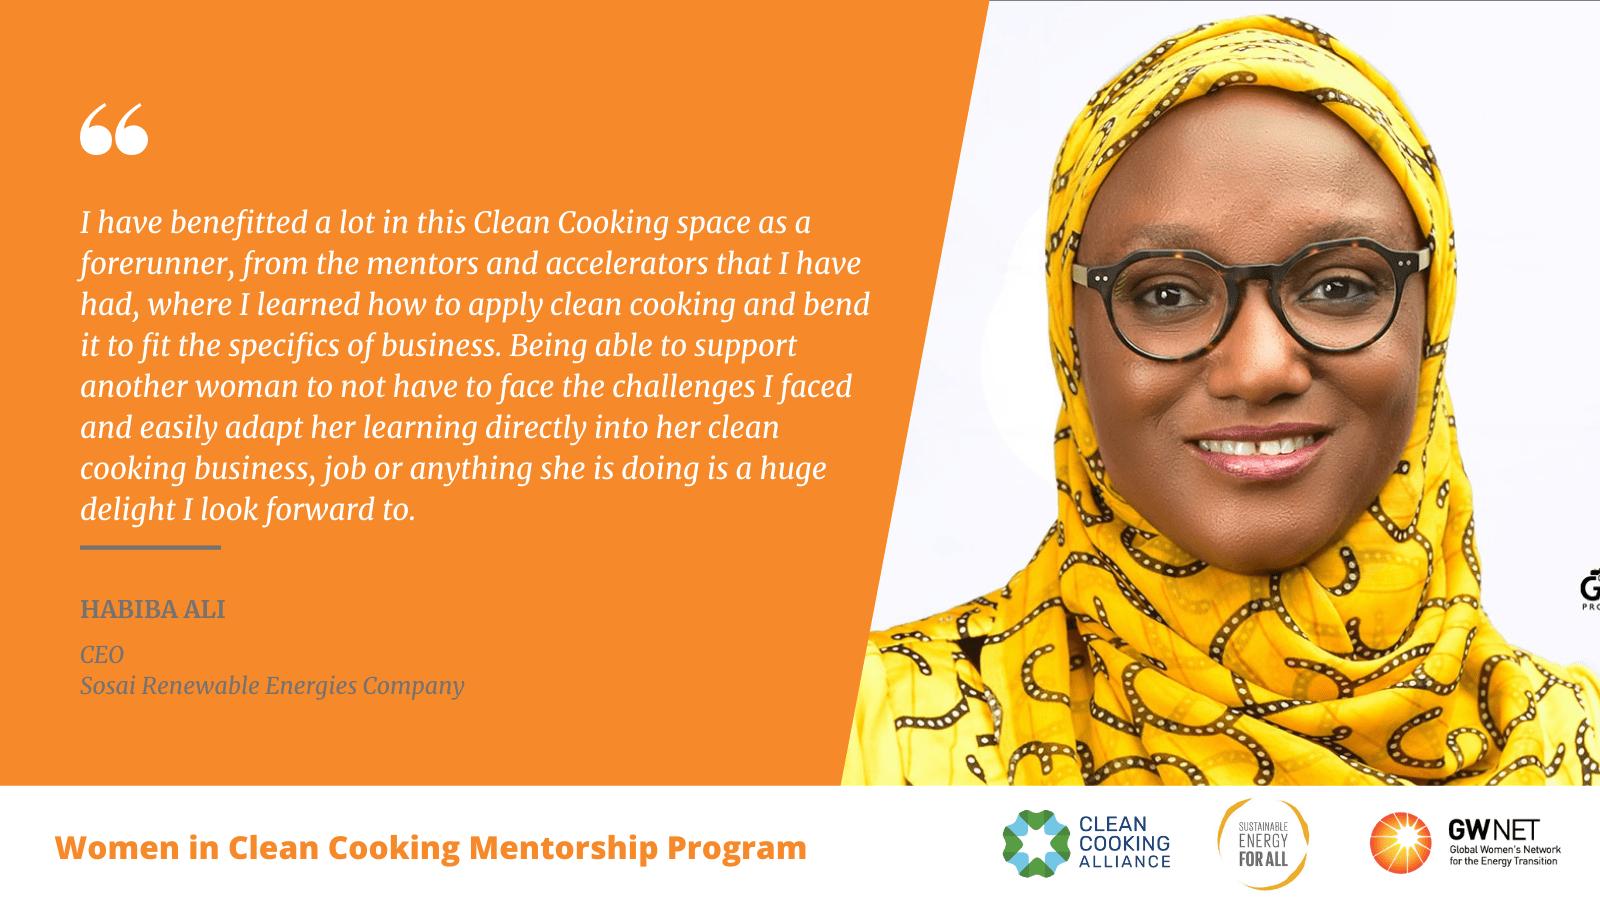 Habiba Ali Women in Clean Cooking Mentorship Program